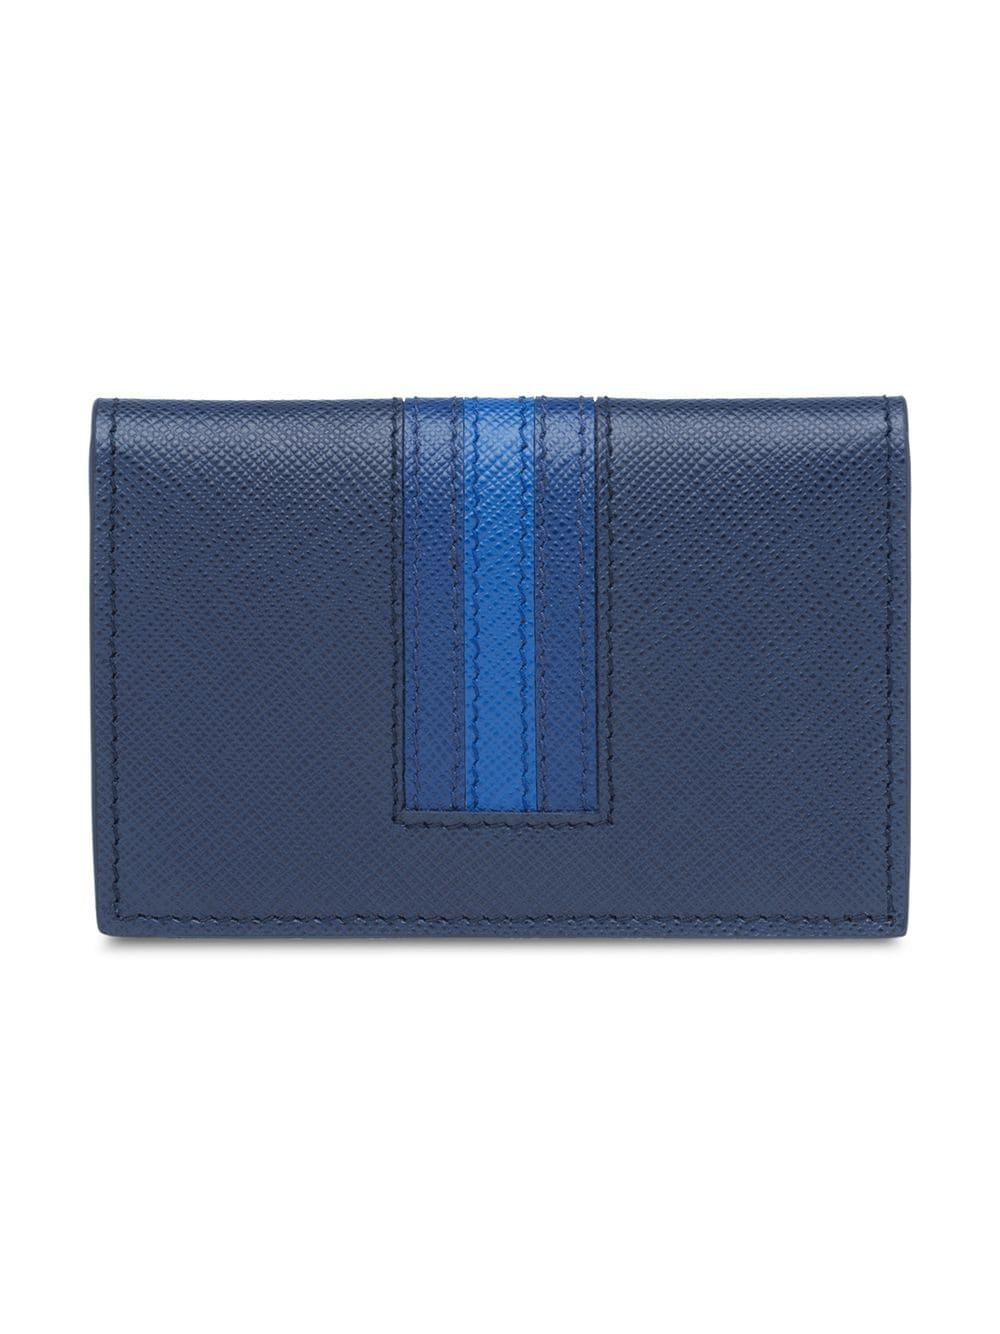 cf336ad6f44f64 Prada Saffiano Leather Card Holder in Blue for Men - Lyst